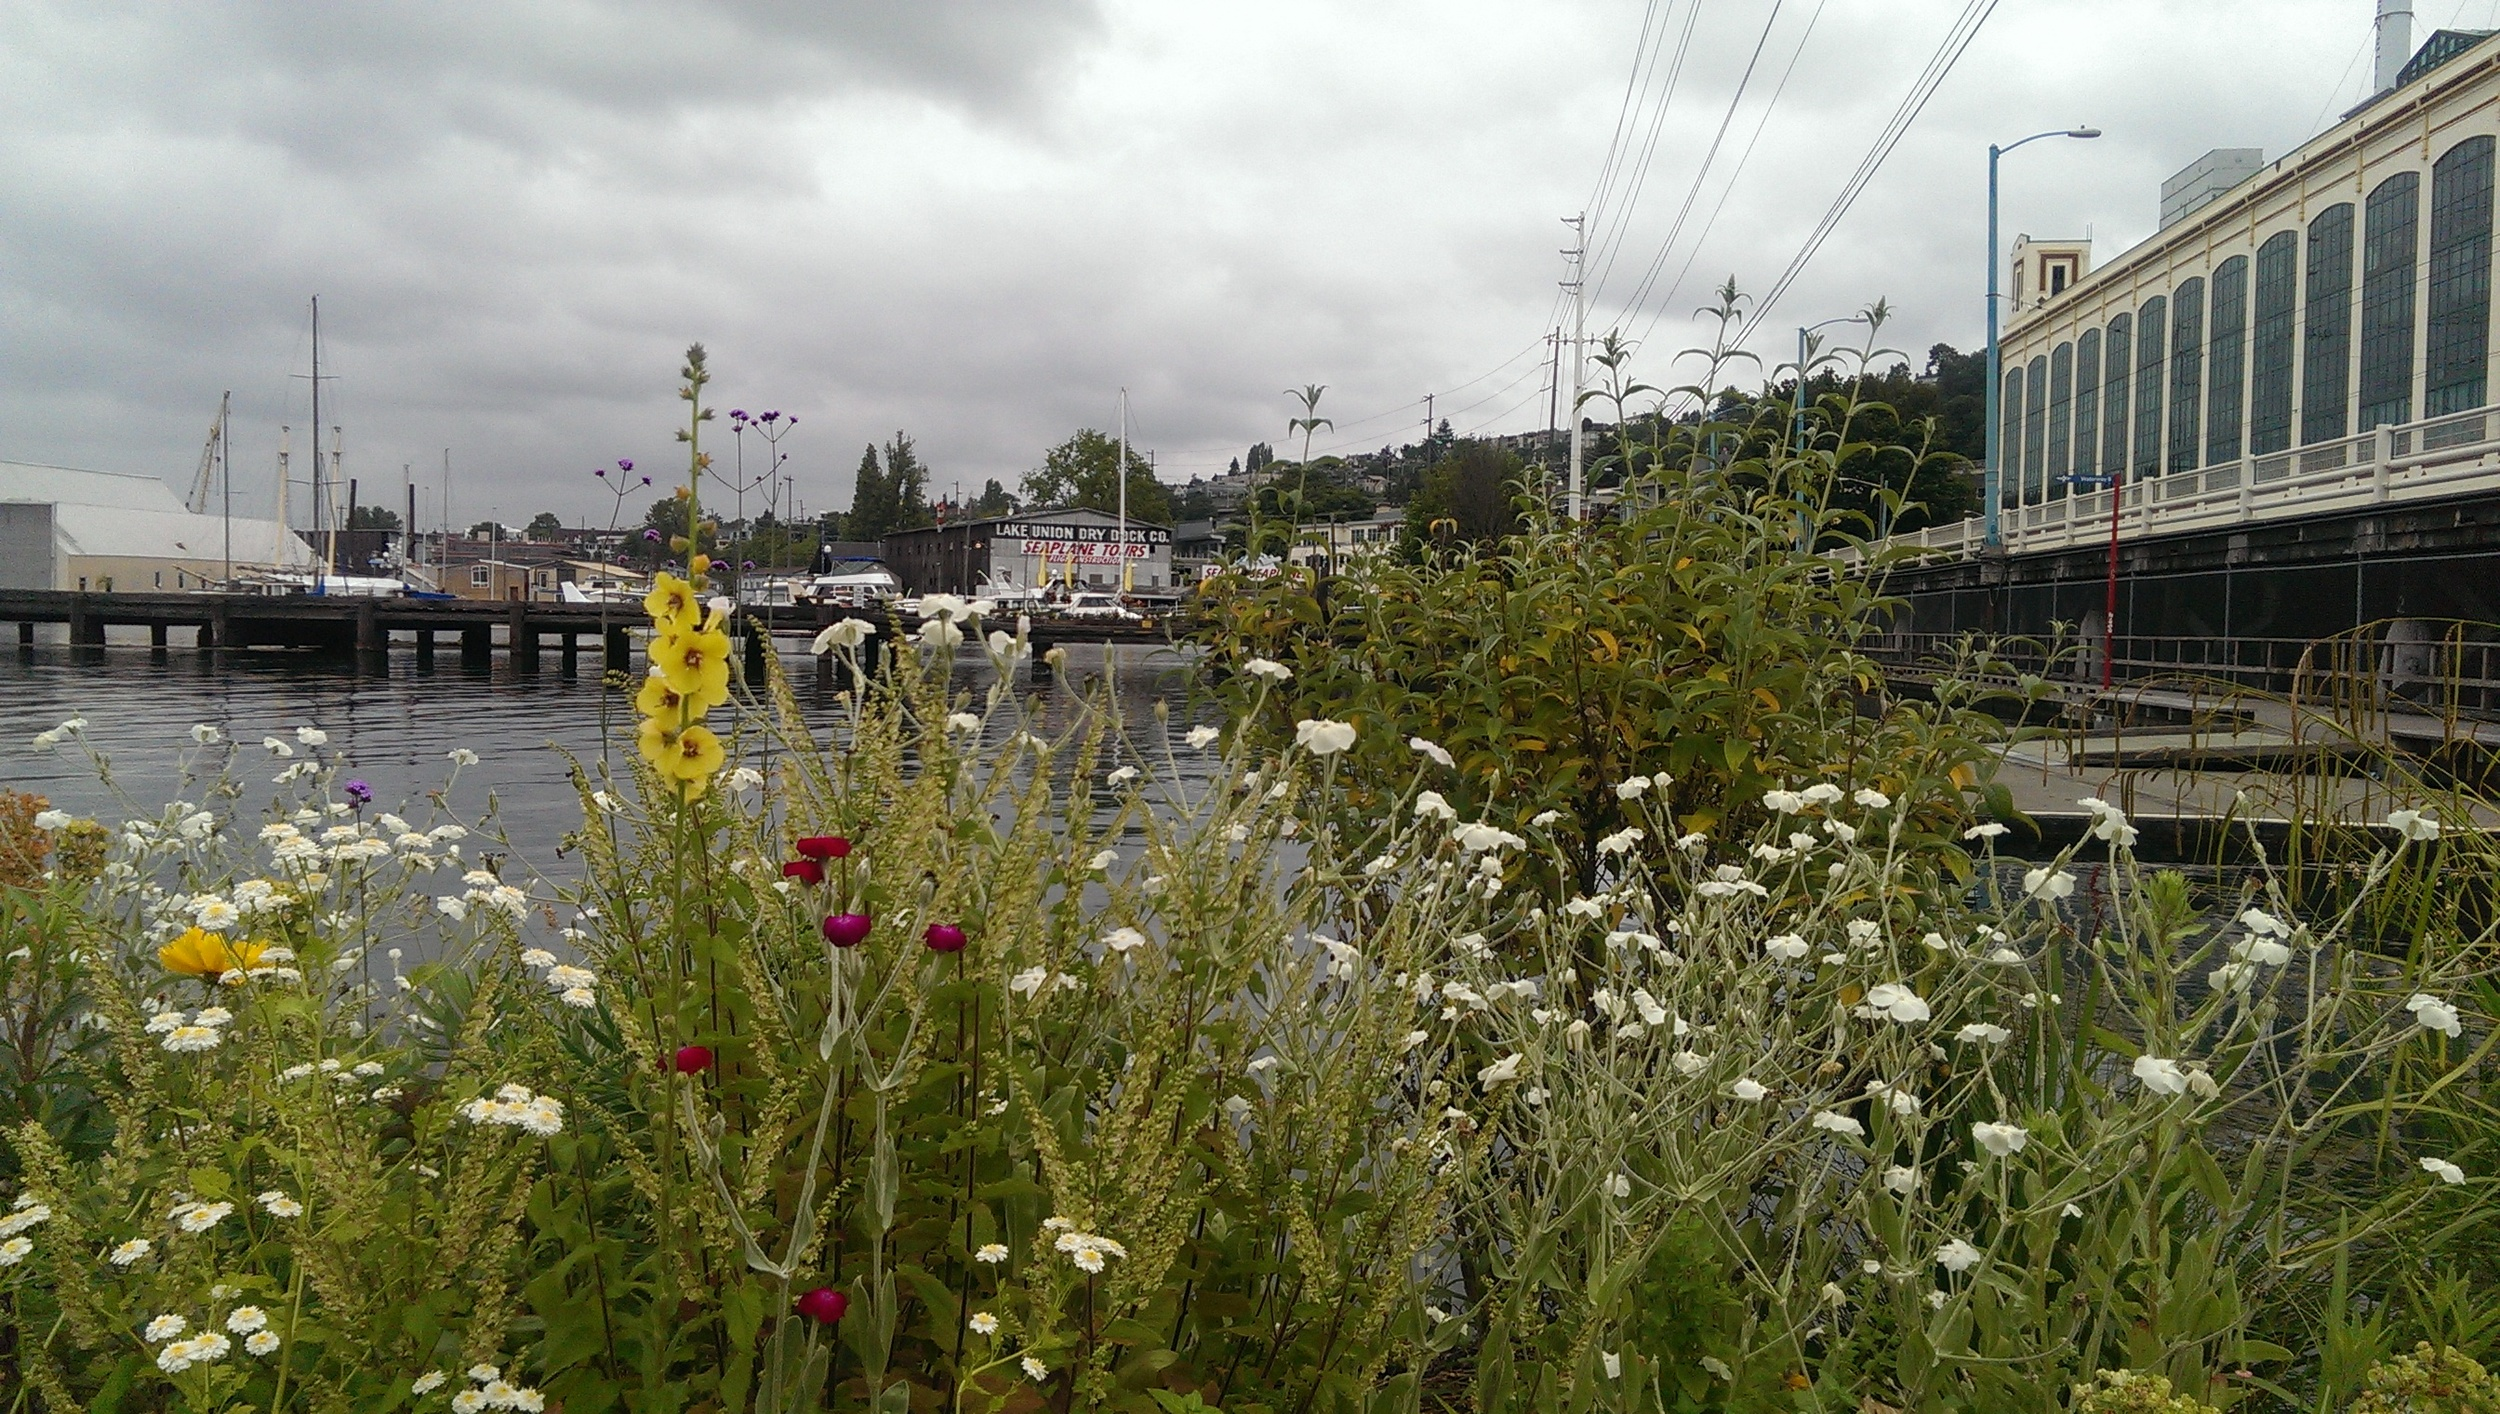 49 - nature + industry = Seattle